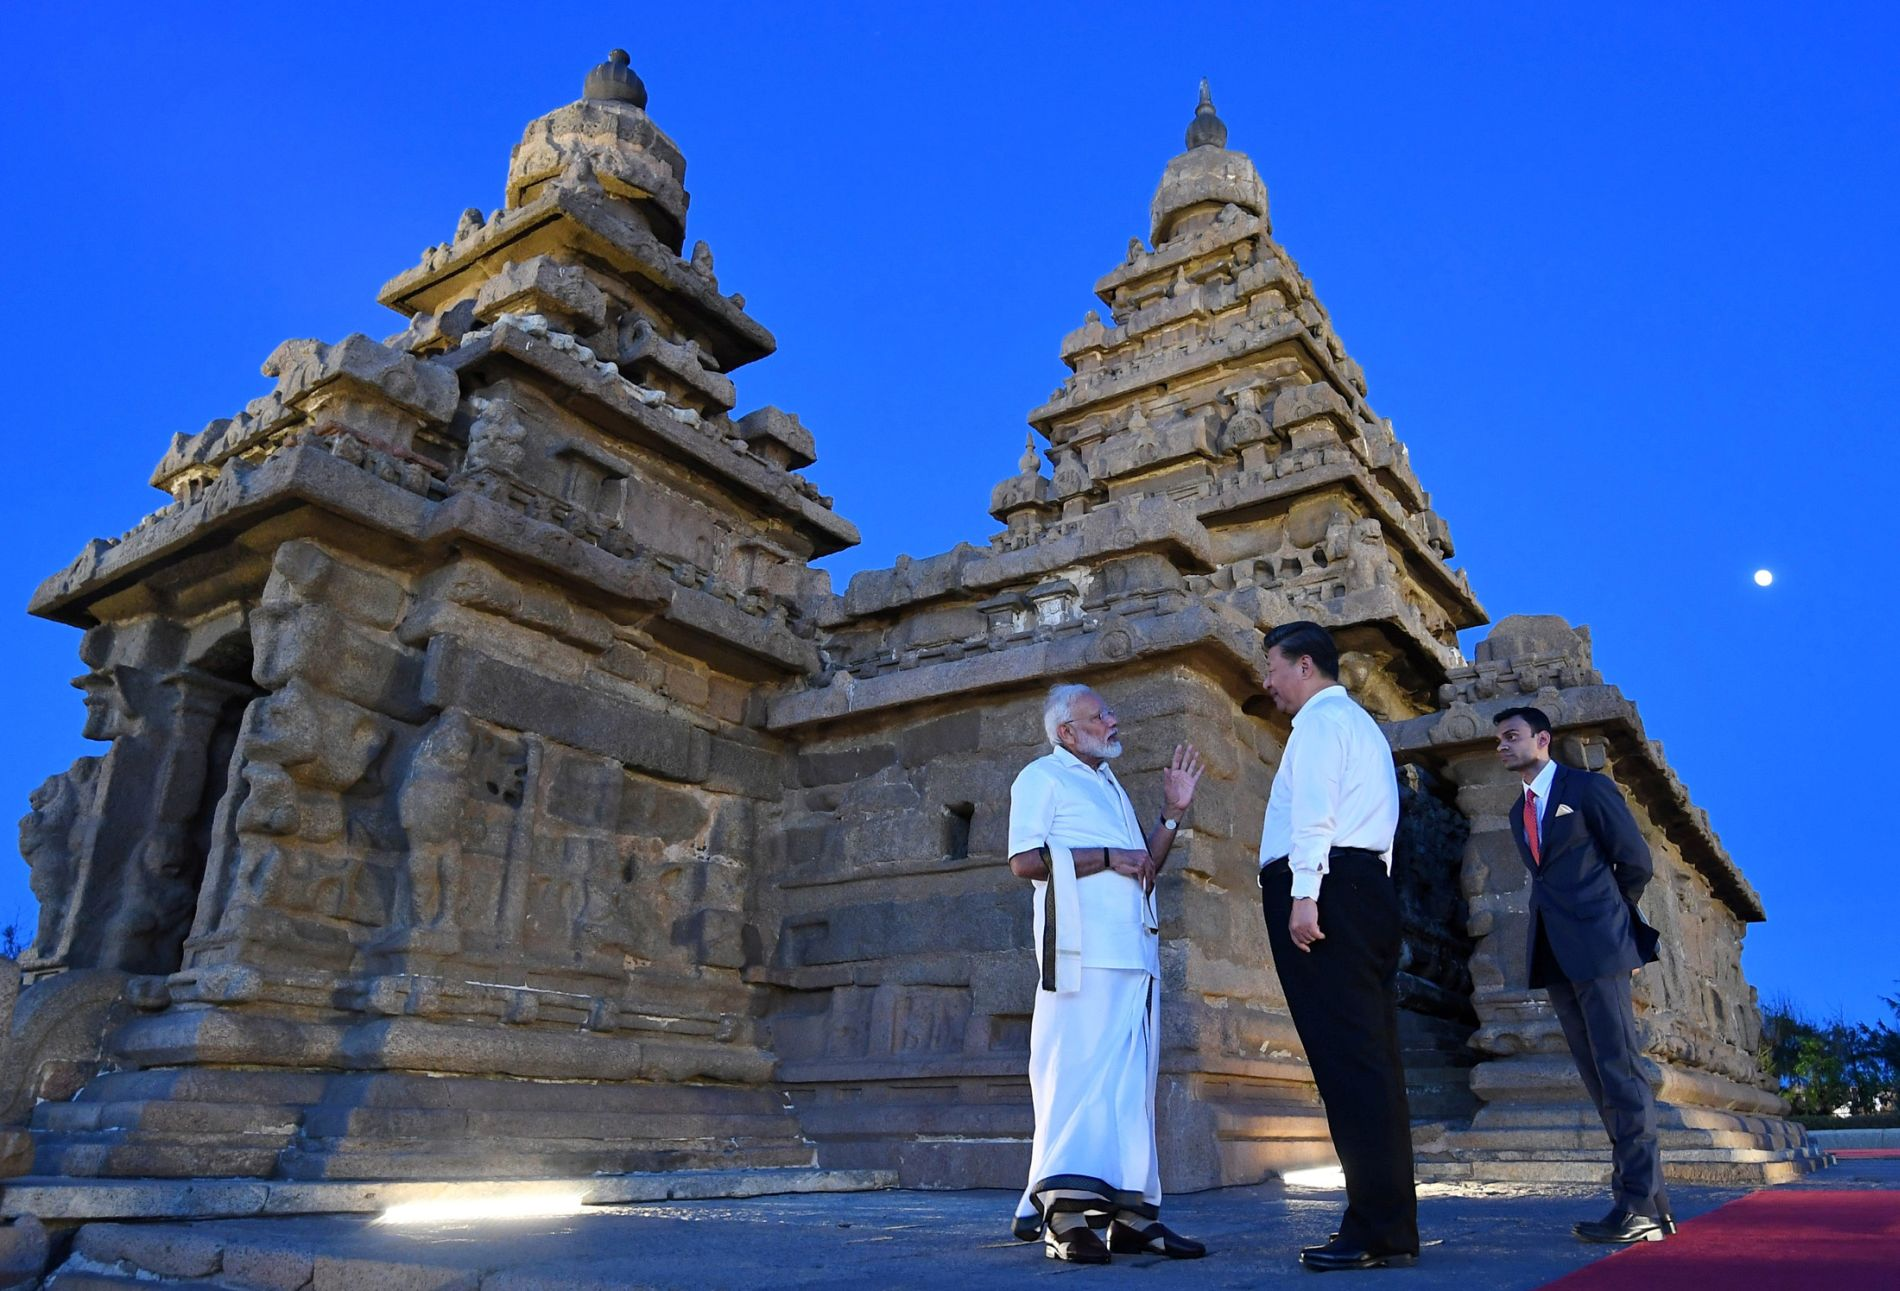 China's President Xi Jinping and India's Prime Minister Narendra Modi talk during their visit to the Shore temple in Mamallapuram